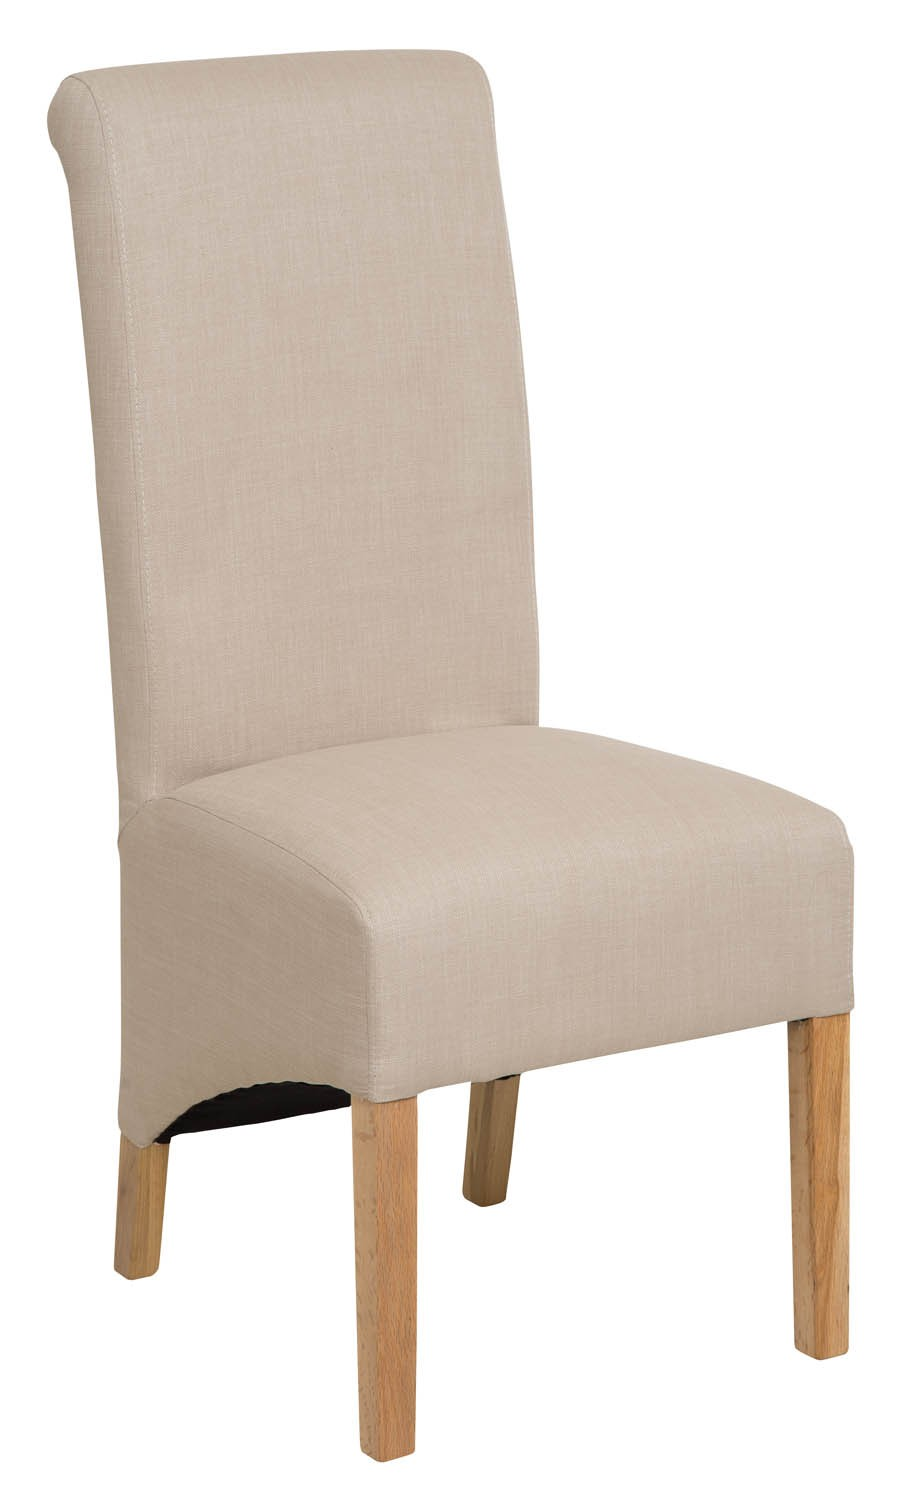 Roll Top Natural Fabric Dining Chair 106cm Hallowood